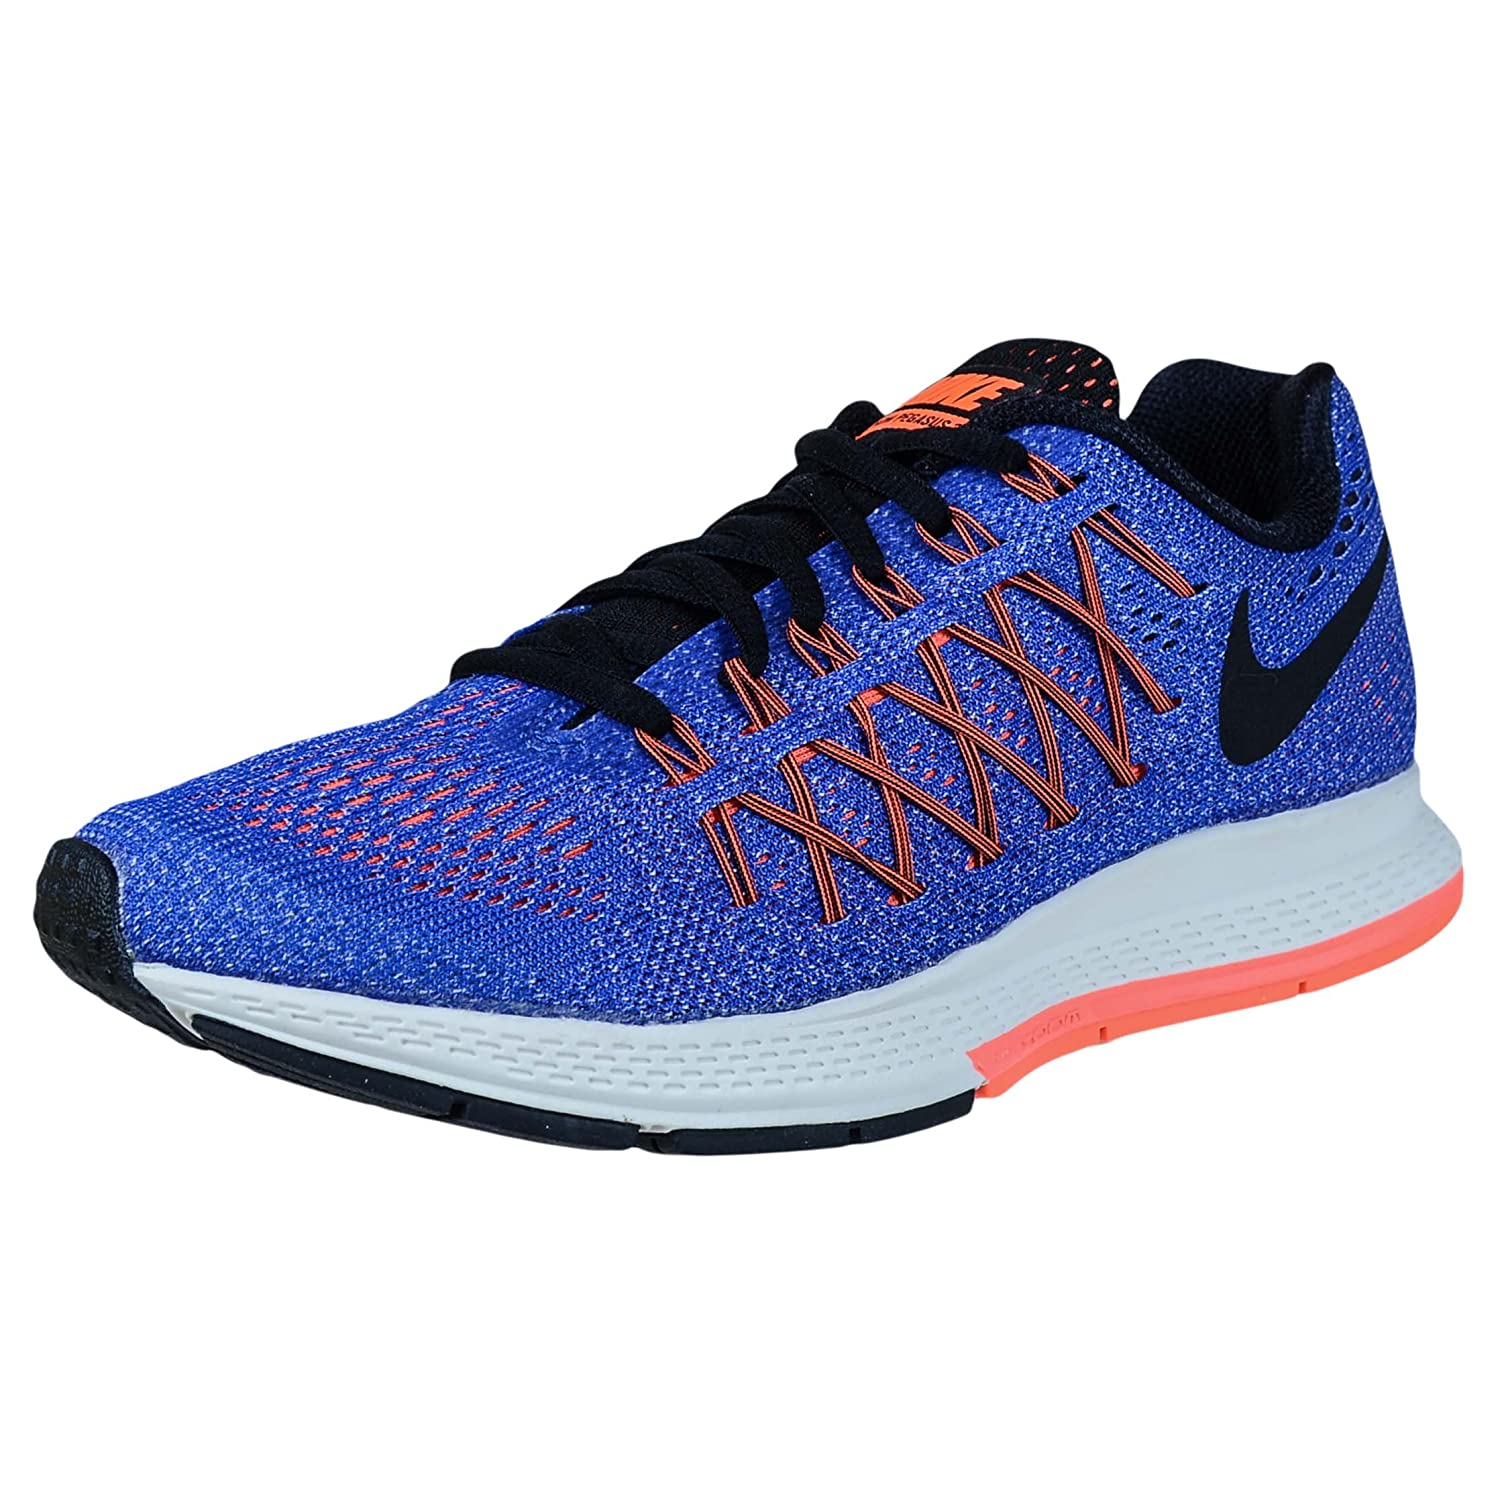 NIKE Women's Air Zoom Pegasus 32 Running Shoe B010OC63AE 11 D(M) US|Racer Blue/Black-hyper Orange-bright Mango